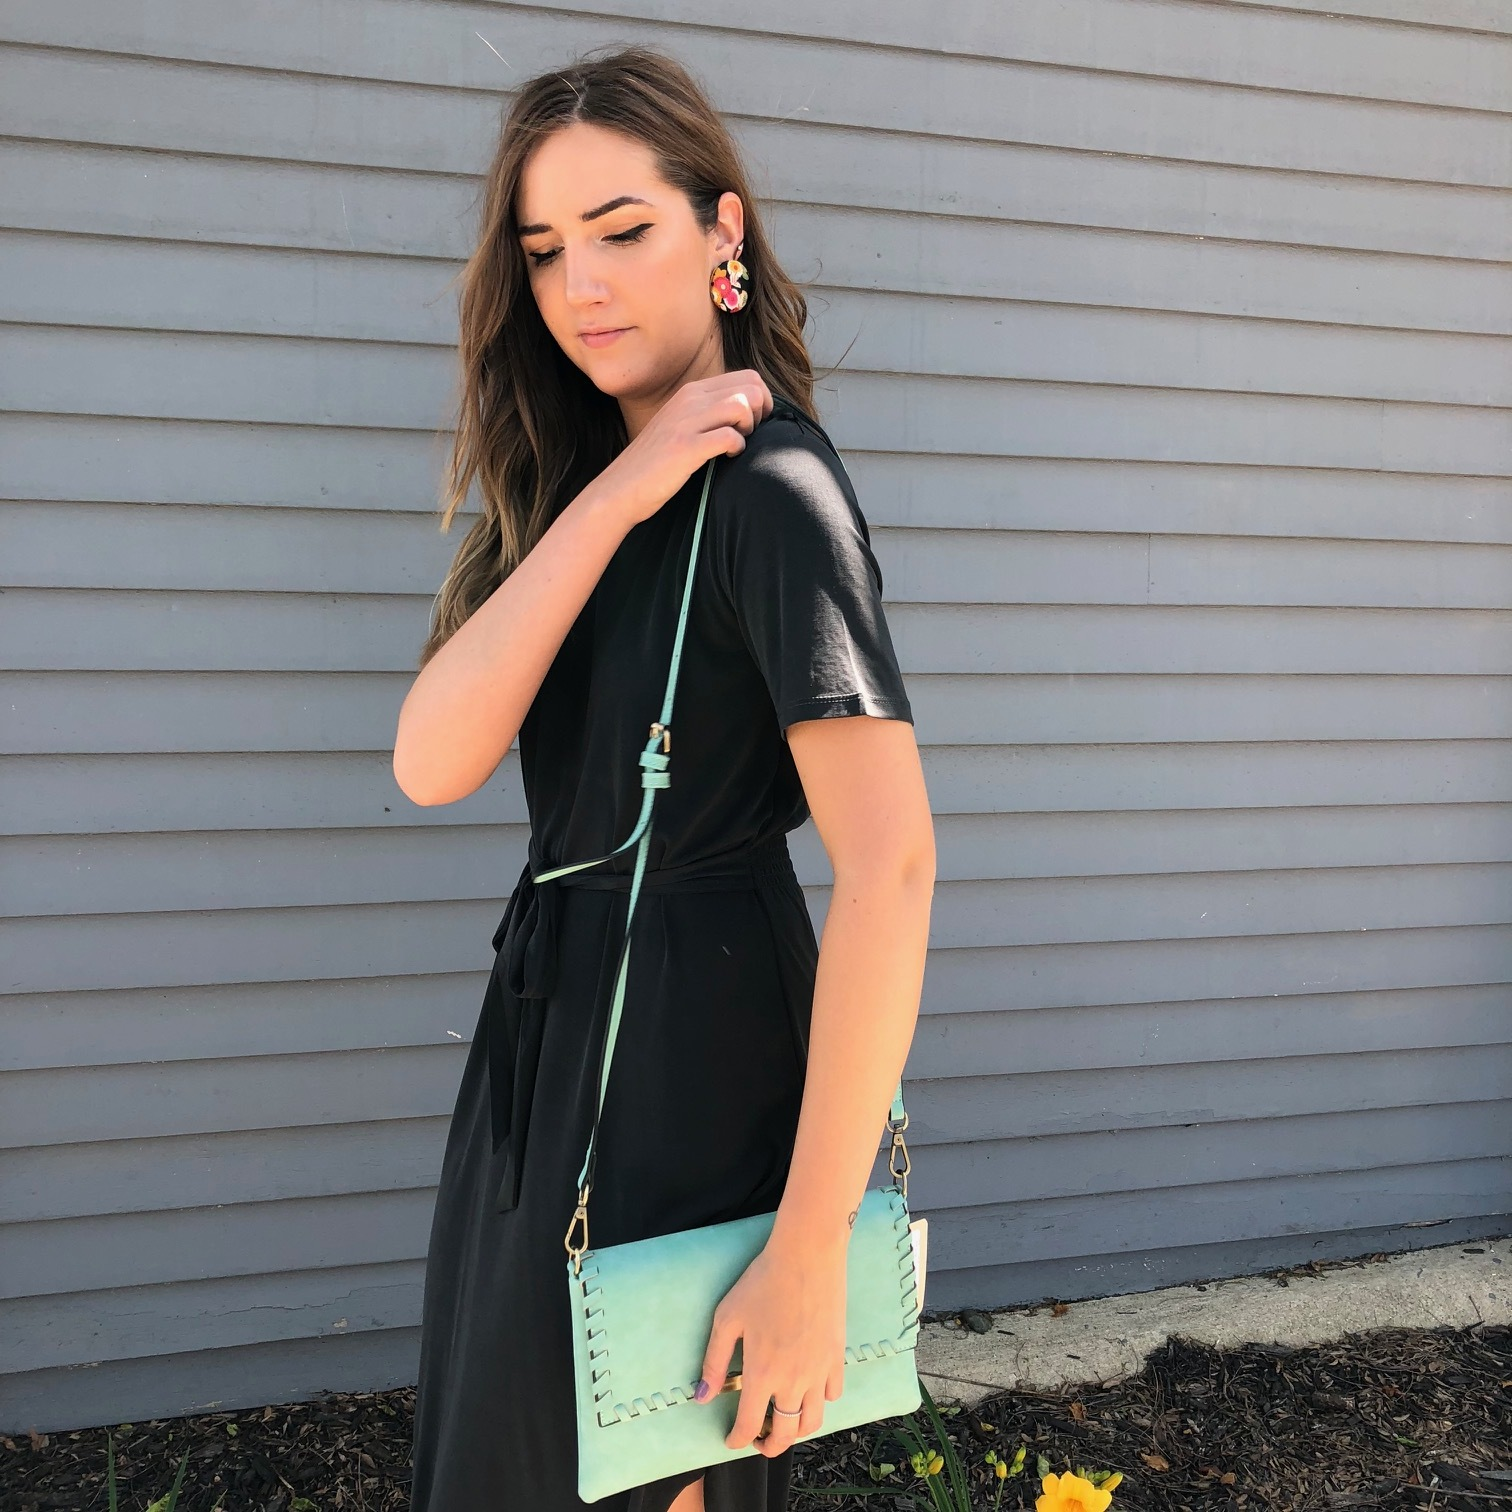 Z Supply Black Tie Dress $55, Floral Earrings $14, Teal Crossbody Purse $38